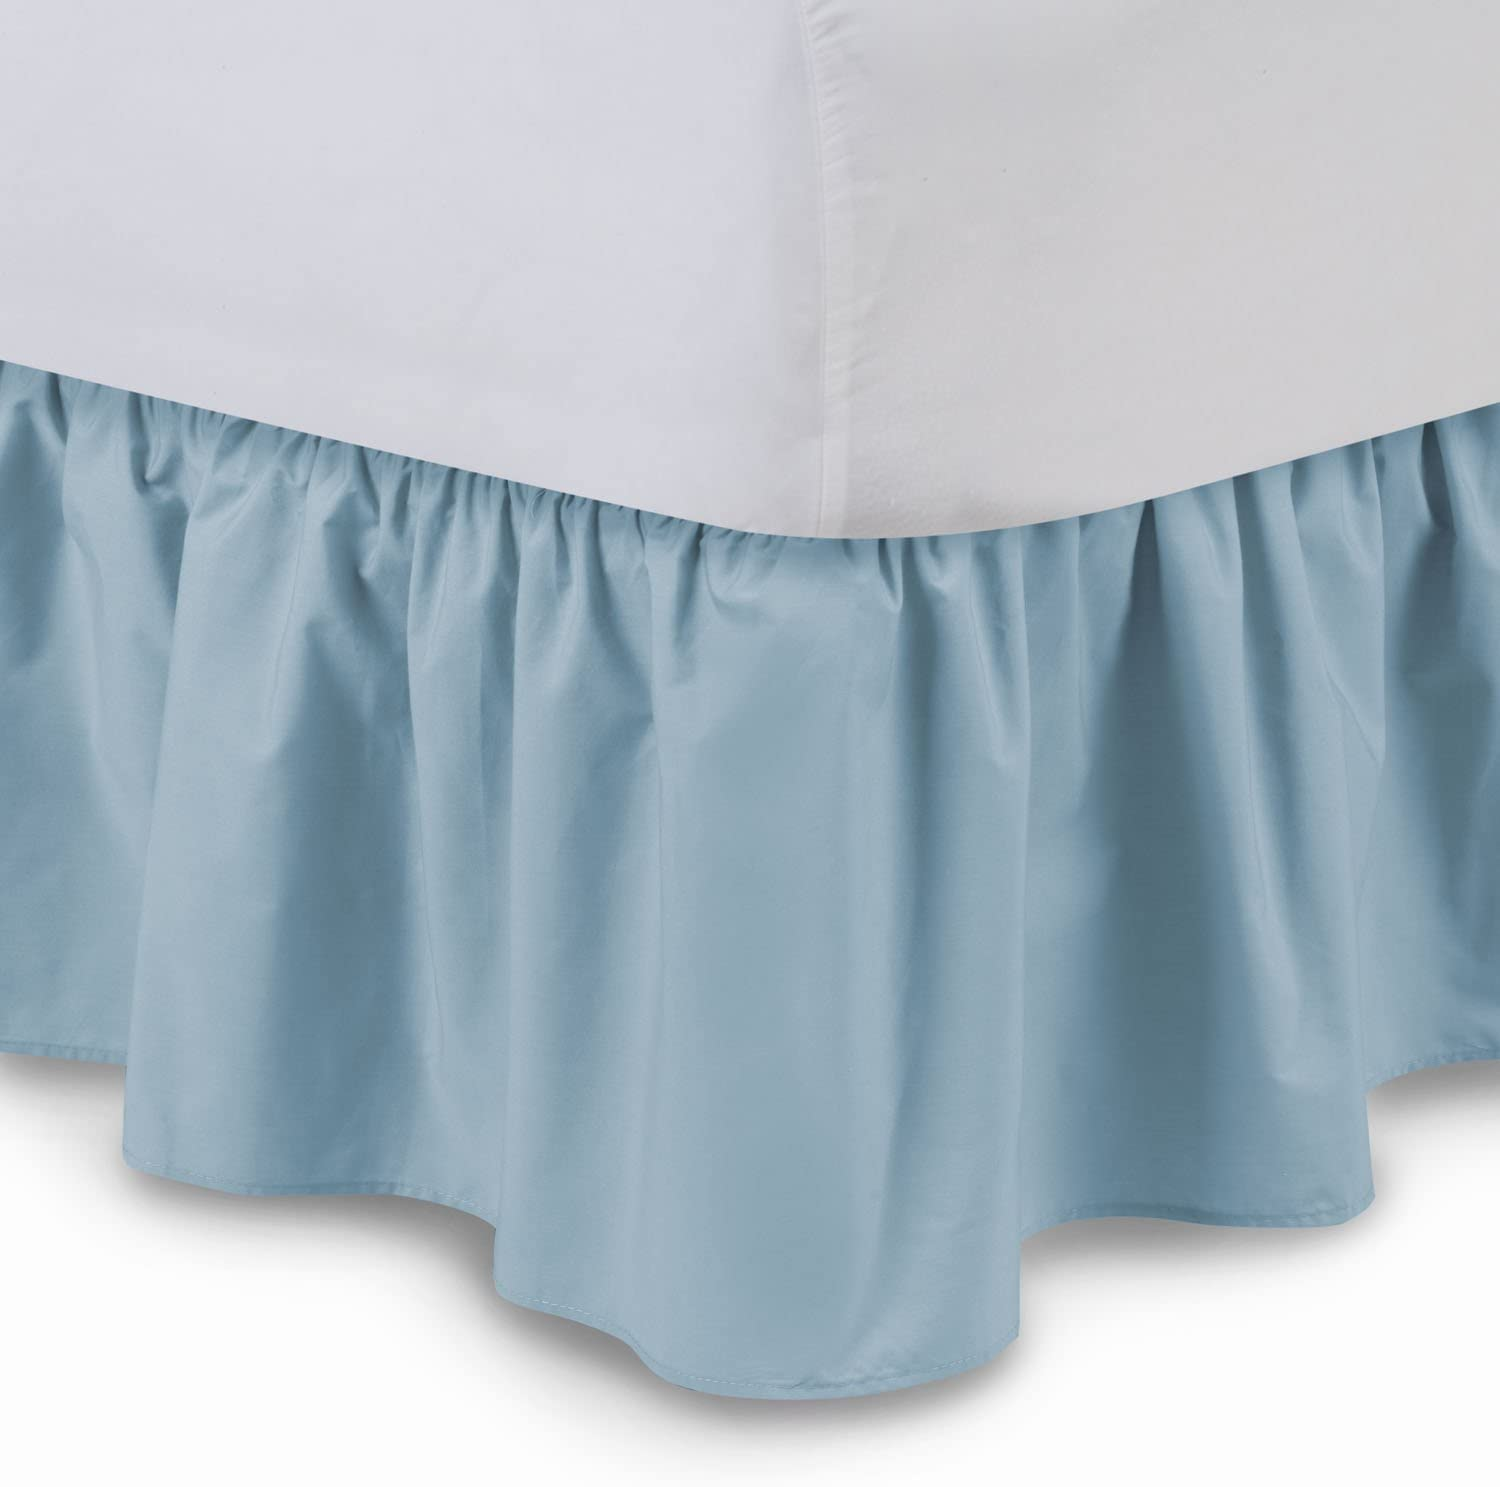 Ruffled Bedskirt (Cal King, Porcelain Blue) 18 Inch Bed Skirt with Platform, Wrinkle and Fade Resistant - by Harmony Lane (Available in All Bed Sizes and 16 Colors)